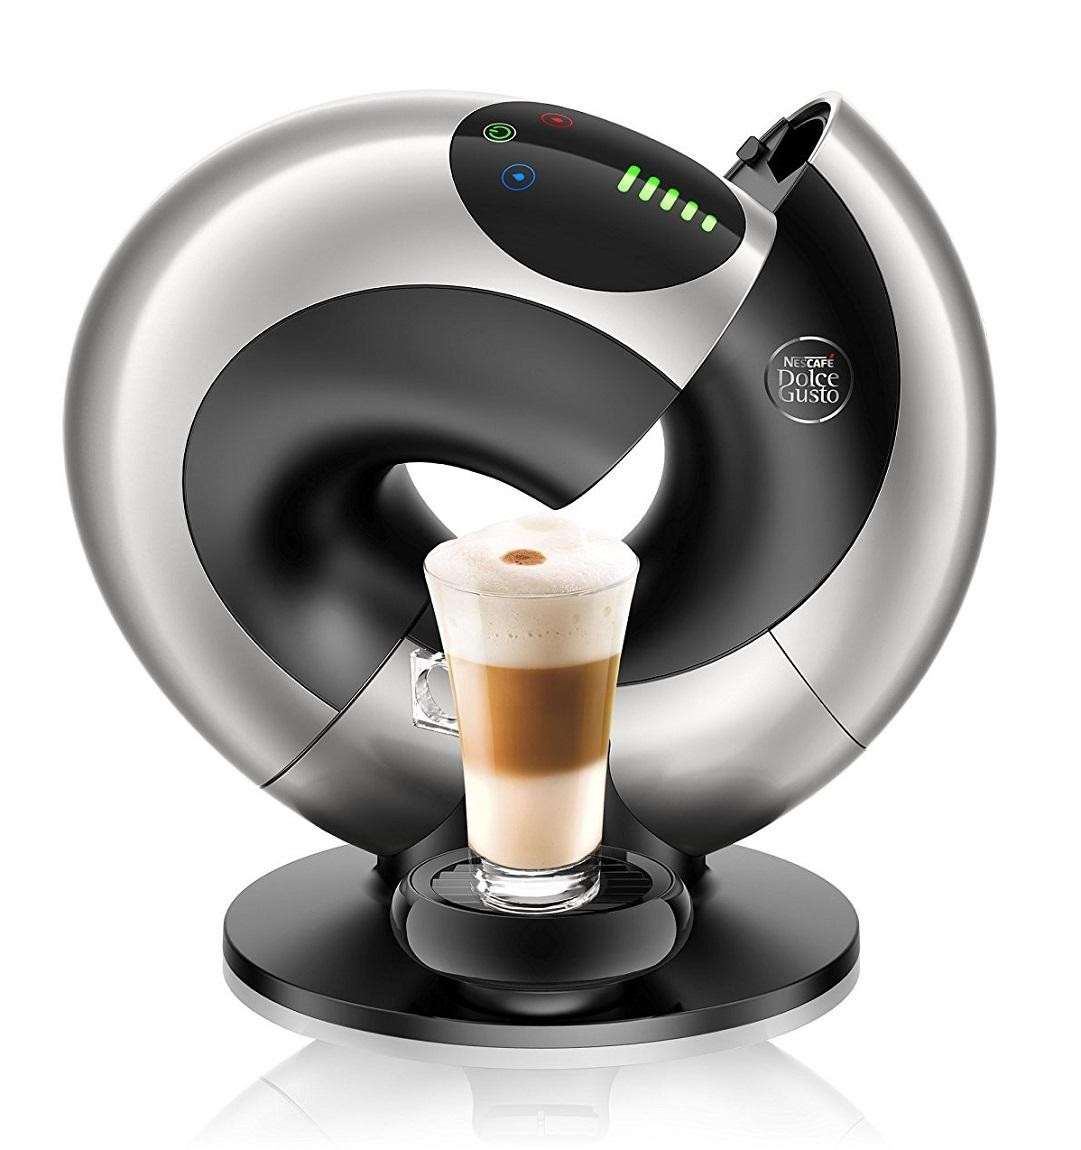 Delonghi-EDG736.S-coffee-machine.jpg